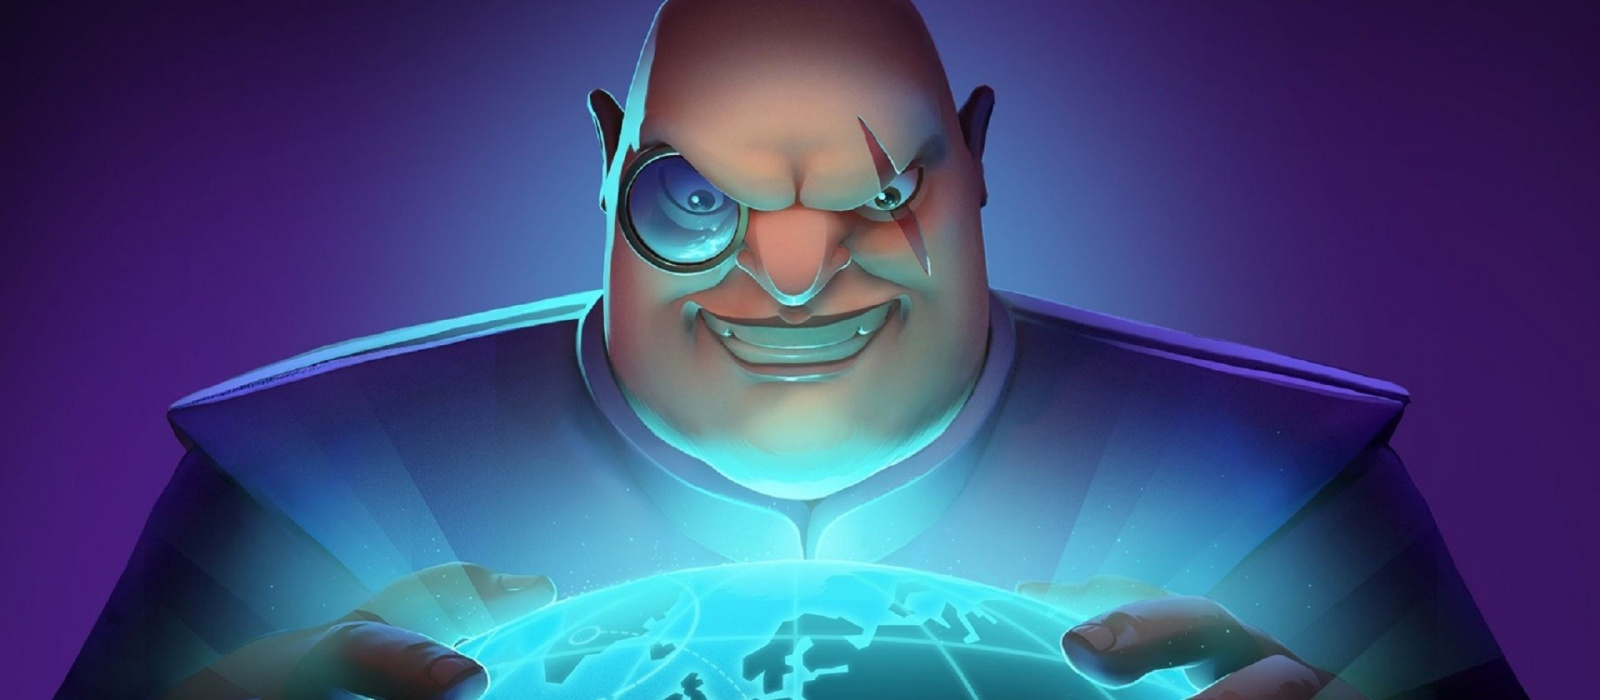 Is Evil Genius 2: World Domination coming to Windows 7, PS4, PS5, Xbox, Nintendo Switch, Android and IOS?